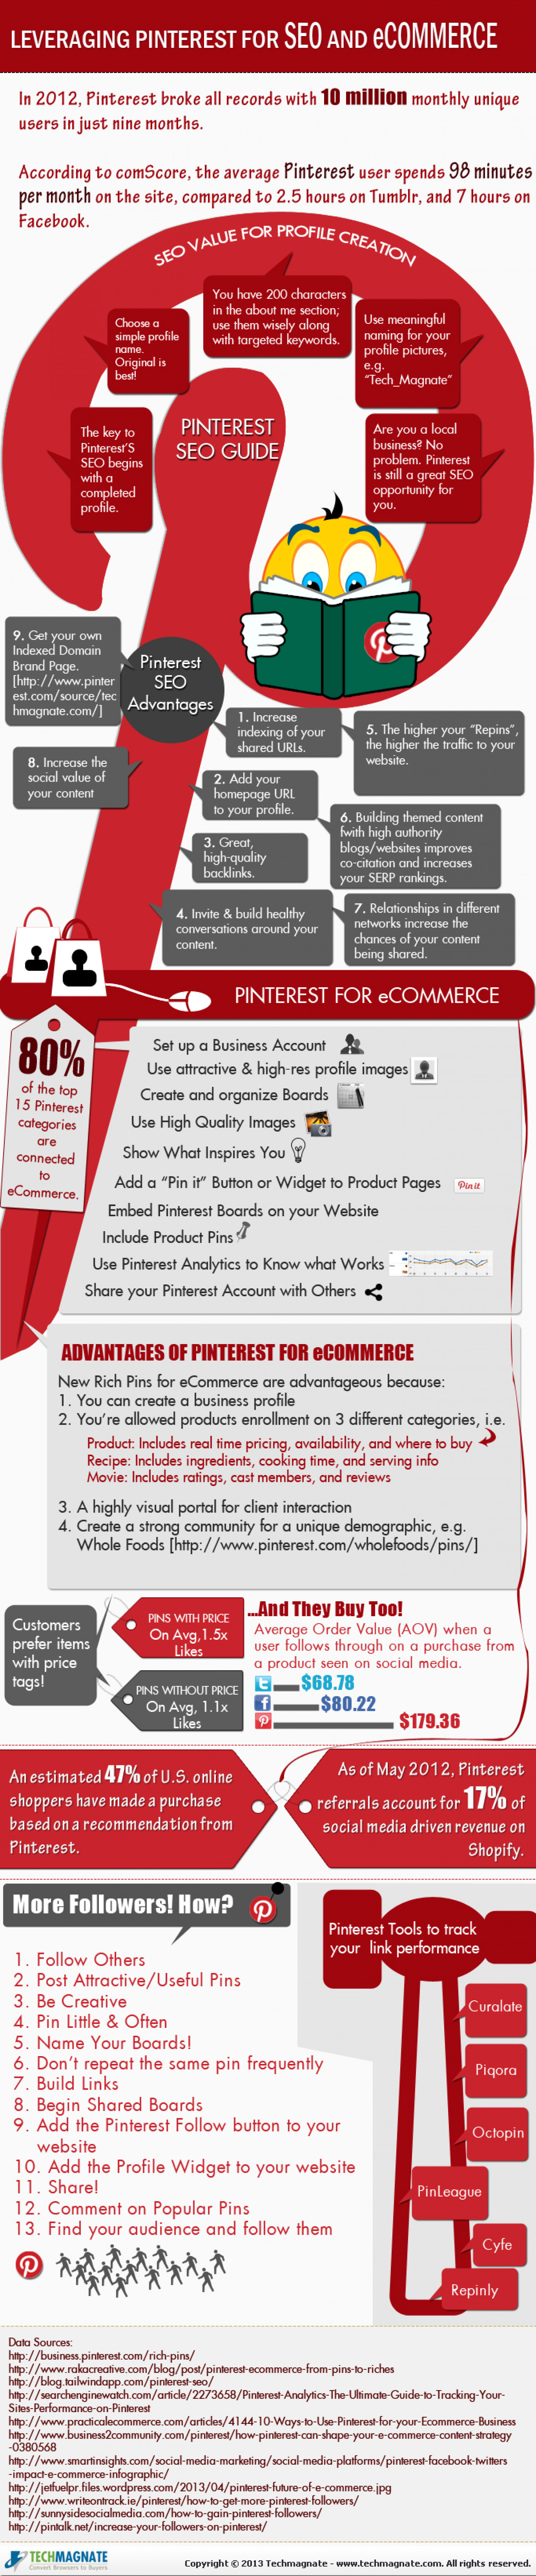 Leverage Pinterest for eCommerce and SEO Infographic